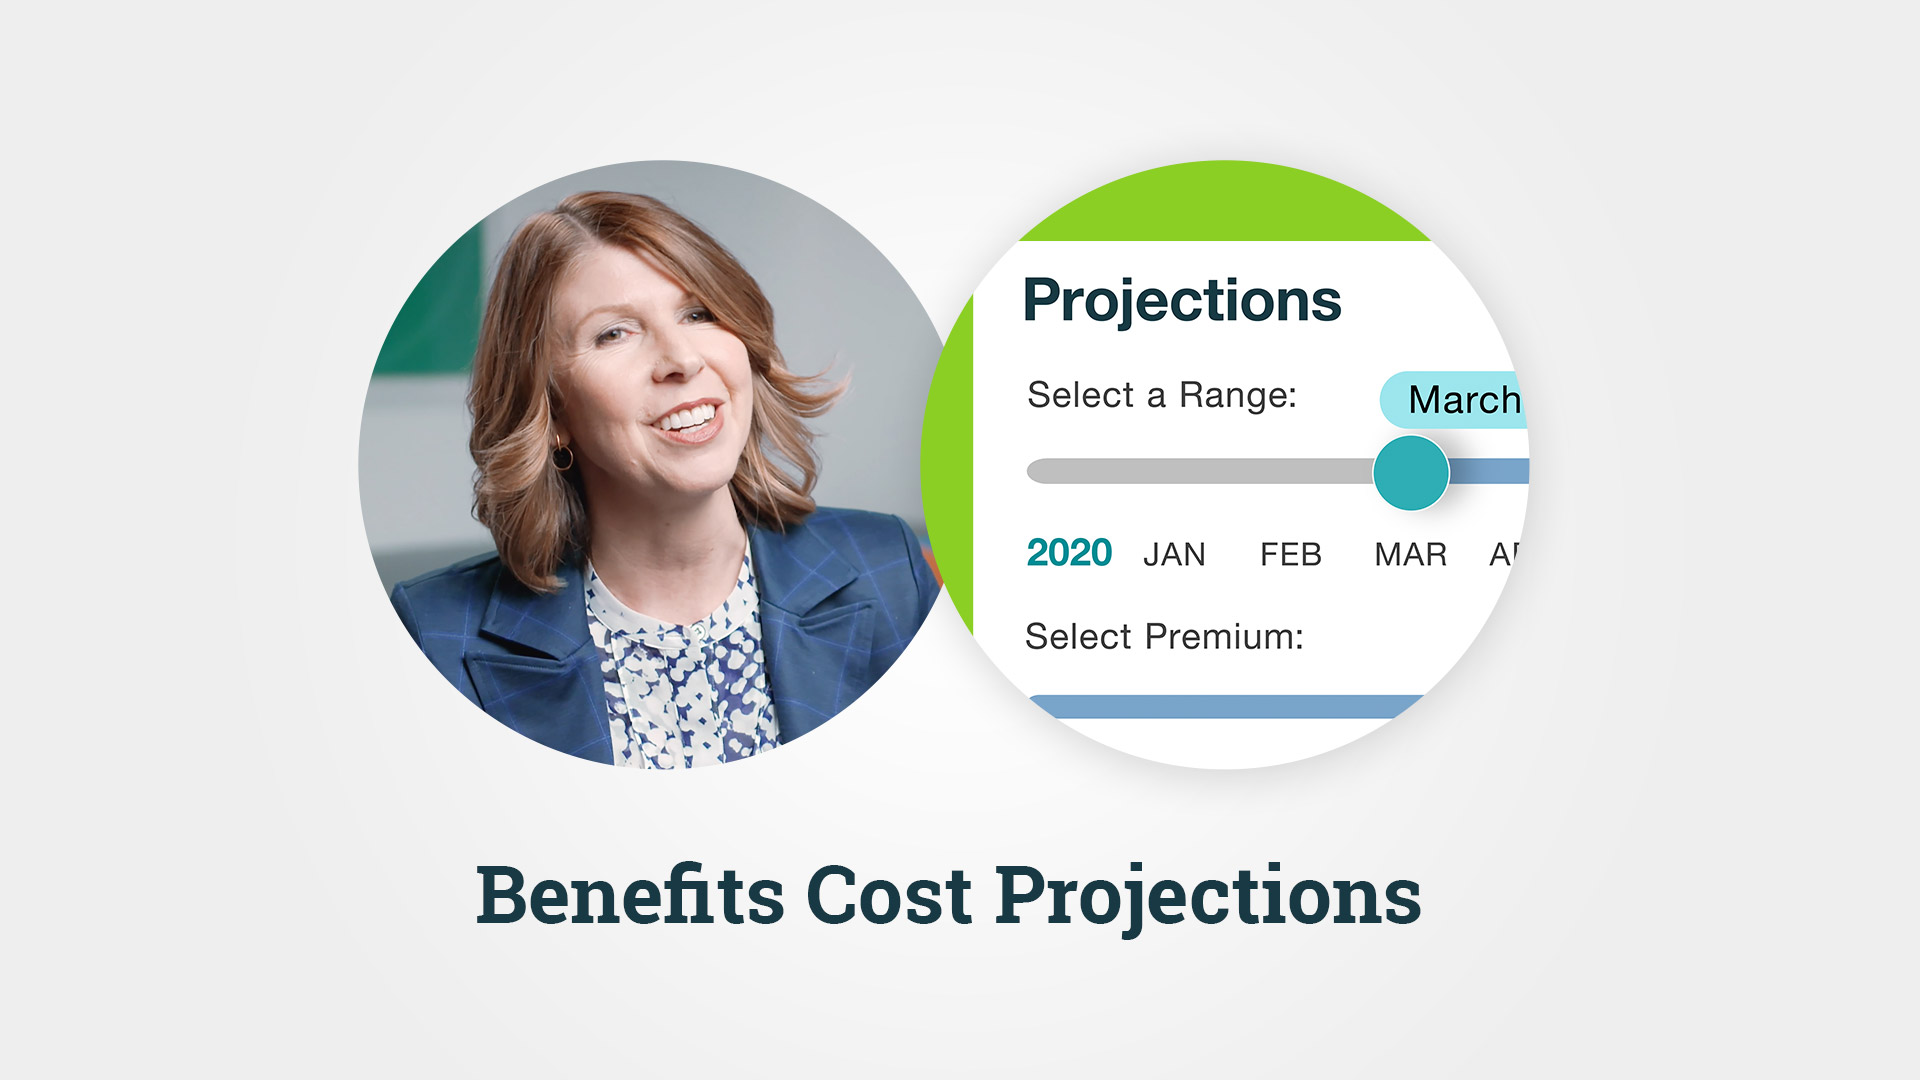 Benefits Cost Projections